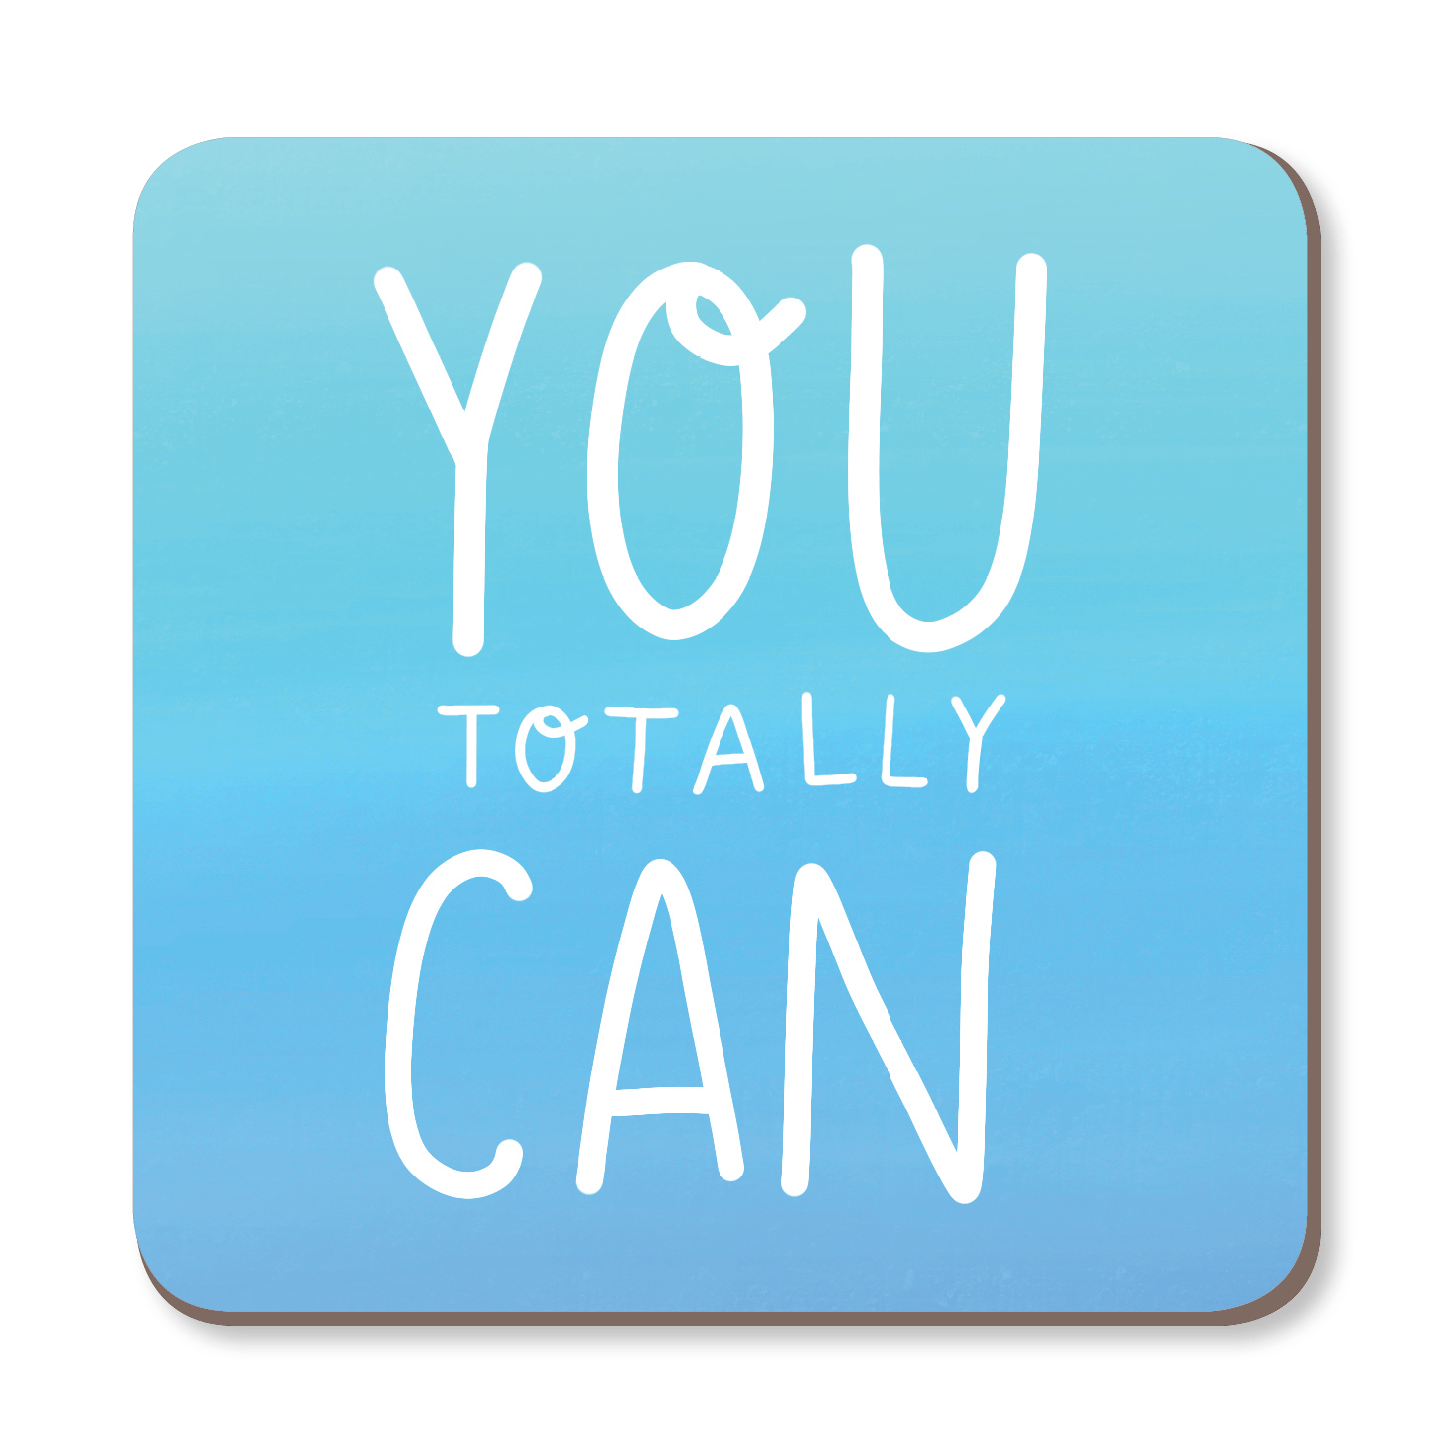 You Totally Can Motivational Coaster by Nutmeg and Arlo - Whale and Bird